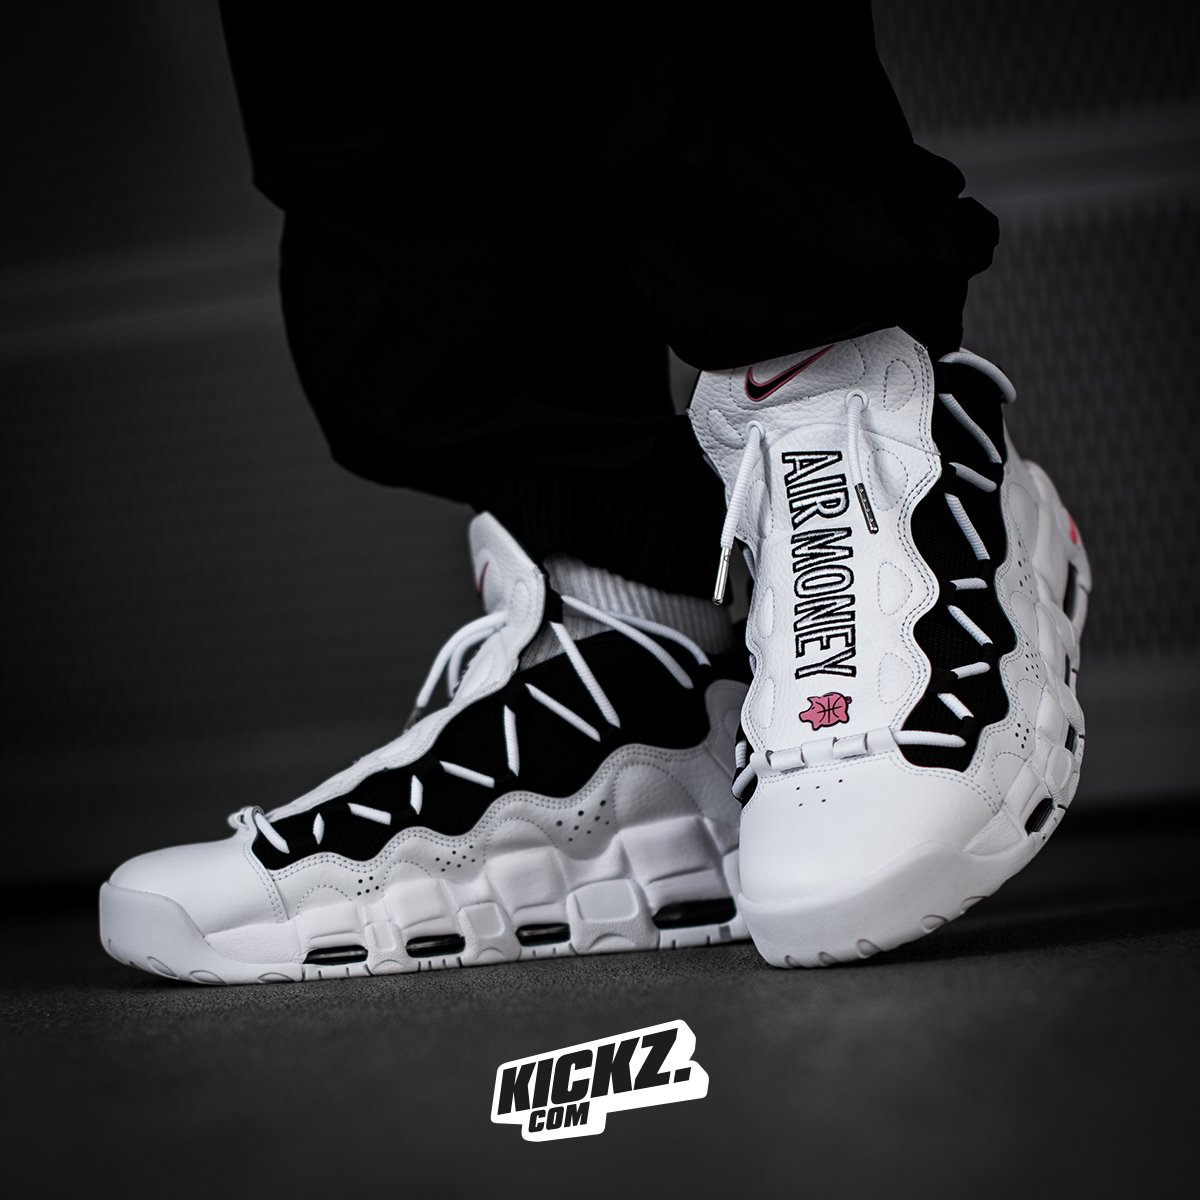 shoe isn't possible! The Nike 'Air